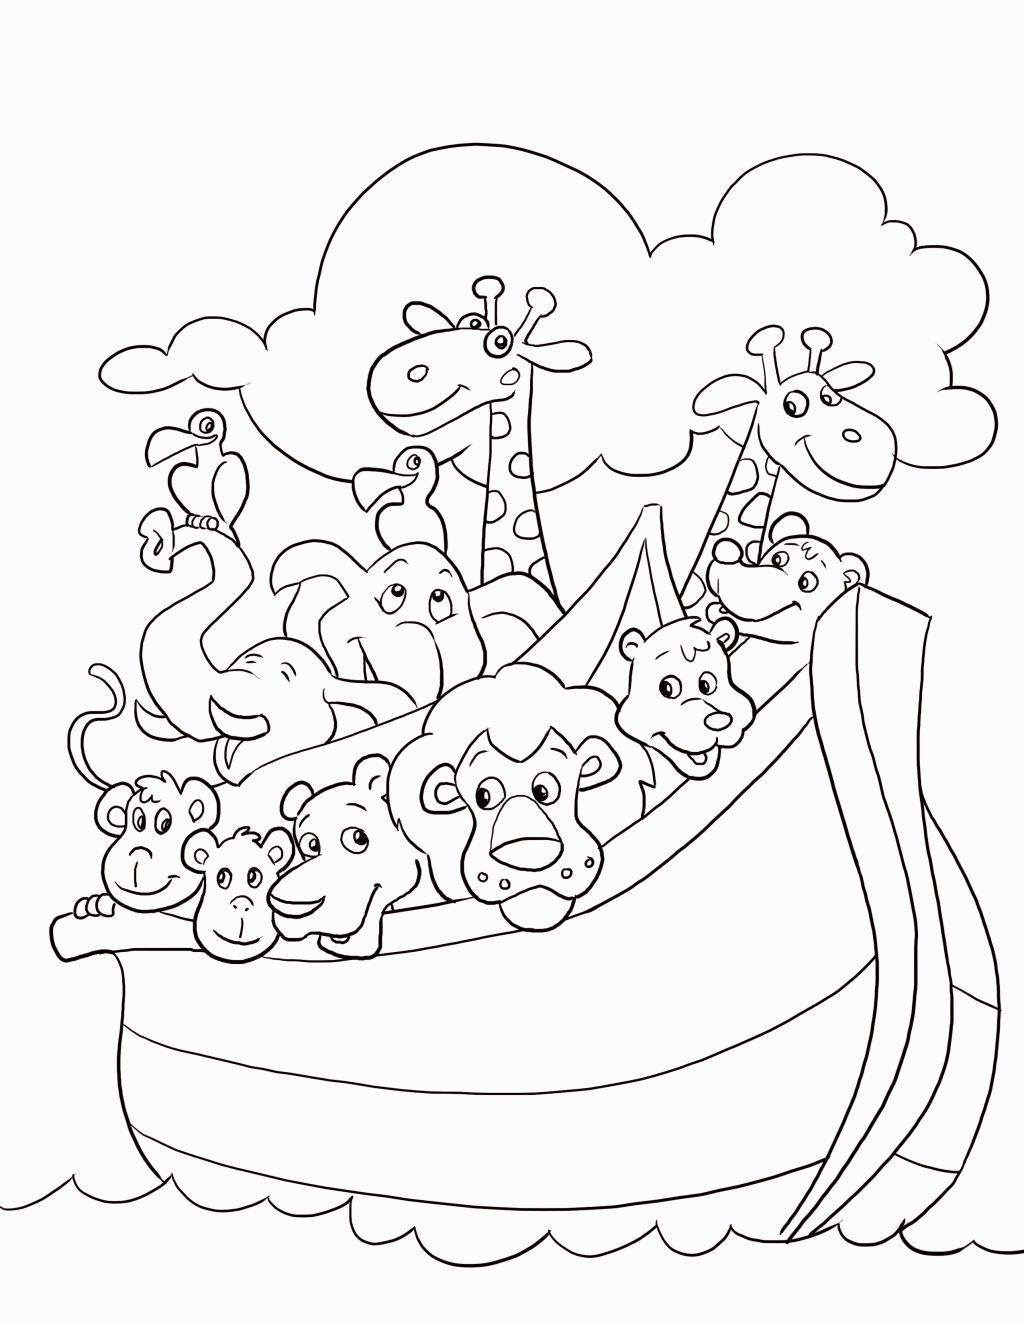 christian youth coloring pages - photo#20